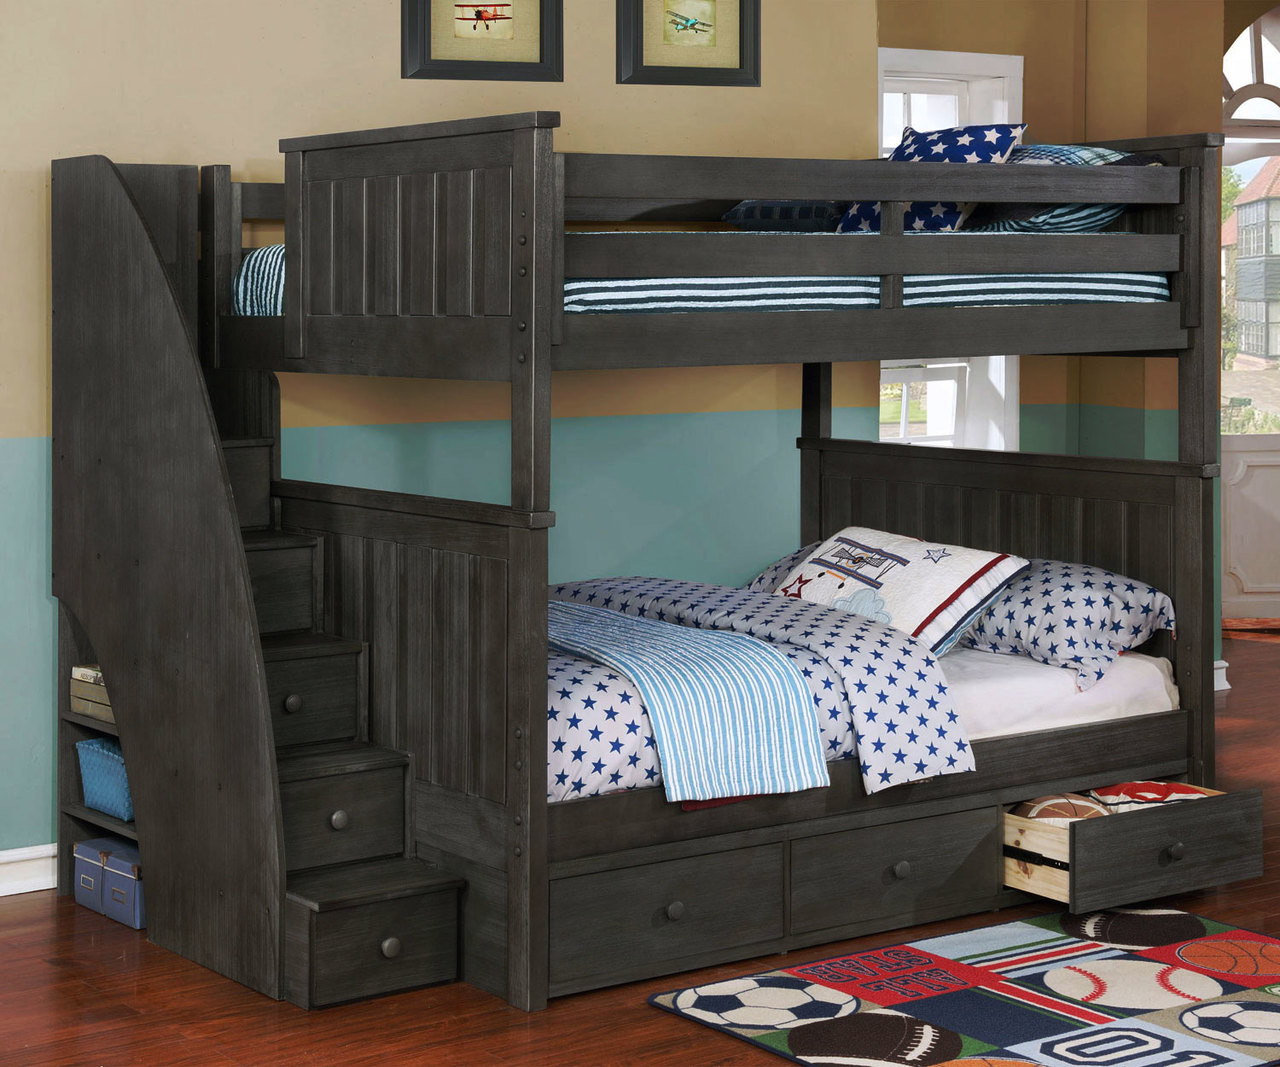 Bed Over Stair Box With Storage And Stairs: Brandon Full Bunk Bed W/ Stairs Dark Gray